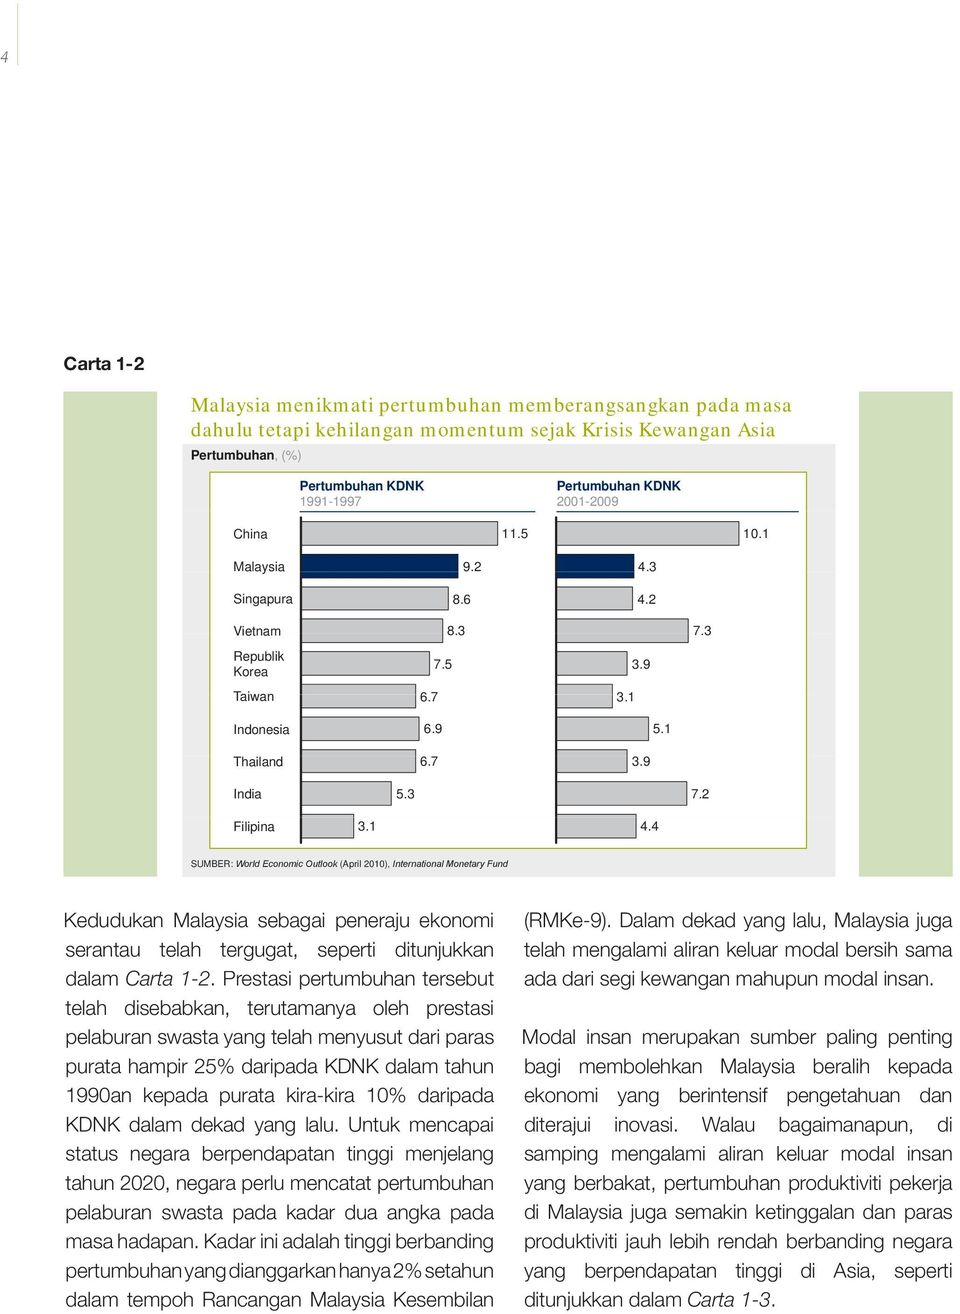 4 SUMBER: World Economic Outlook (April 2010), International Monetary Fund Kedudukan Malaysia sebagai peneraju ekonomi serantau telah tergugat, seperti ditunjukkan dalam Carta 1-2.